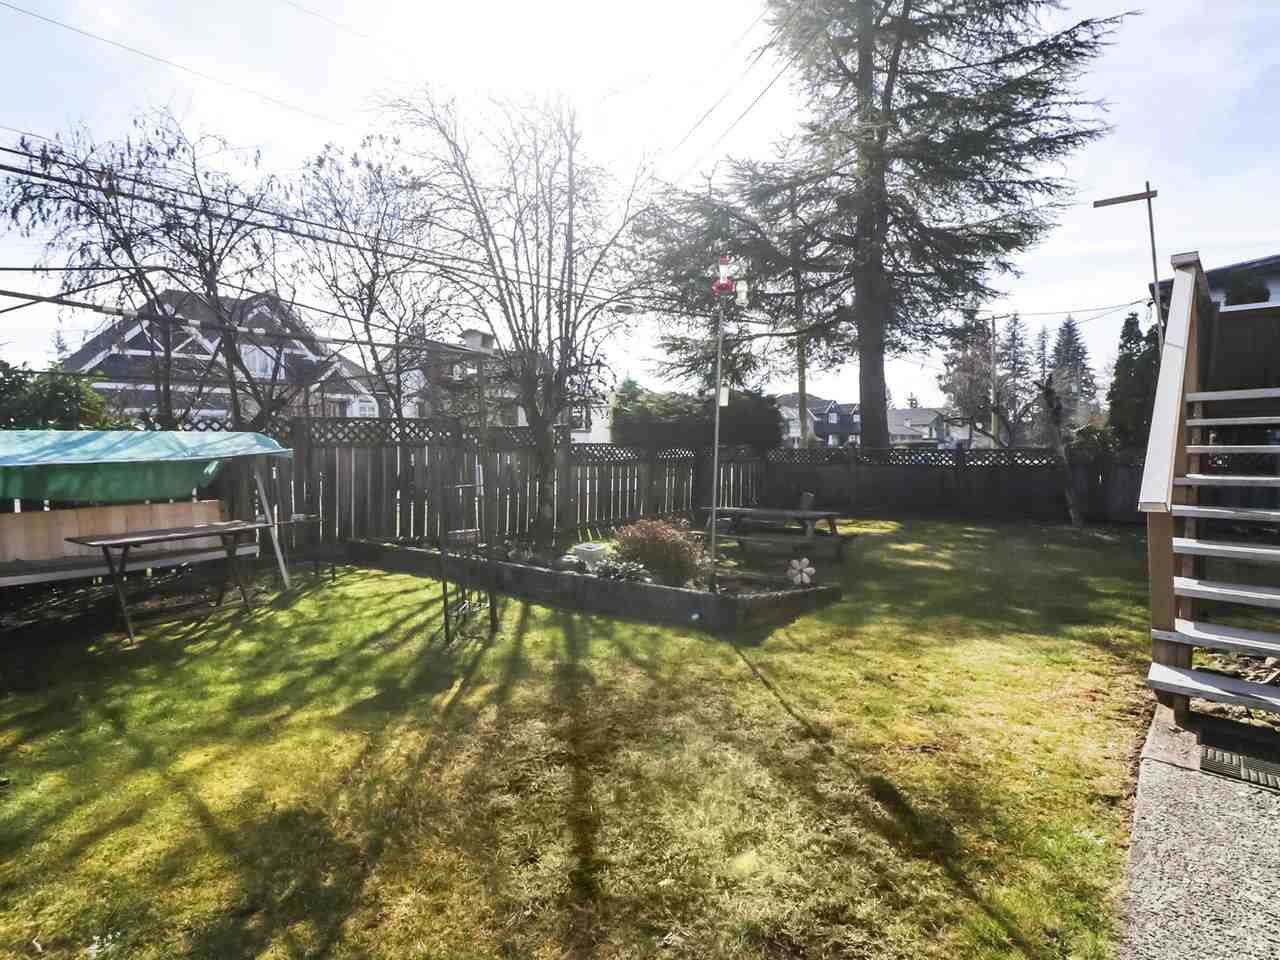 Photo 18: Photos: 730 SCHOOLHOUSE Street in Coquitlam: Central Coquitlam House for sale : MLS®# R2446516